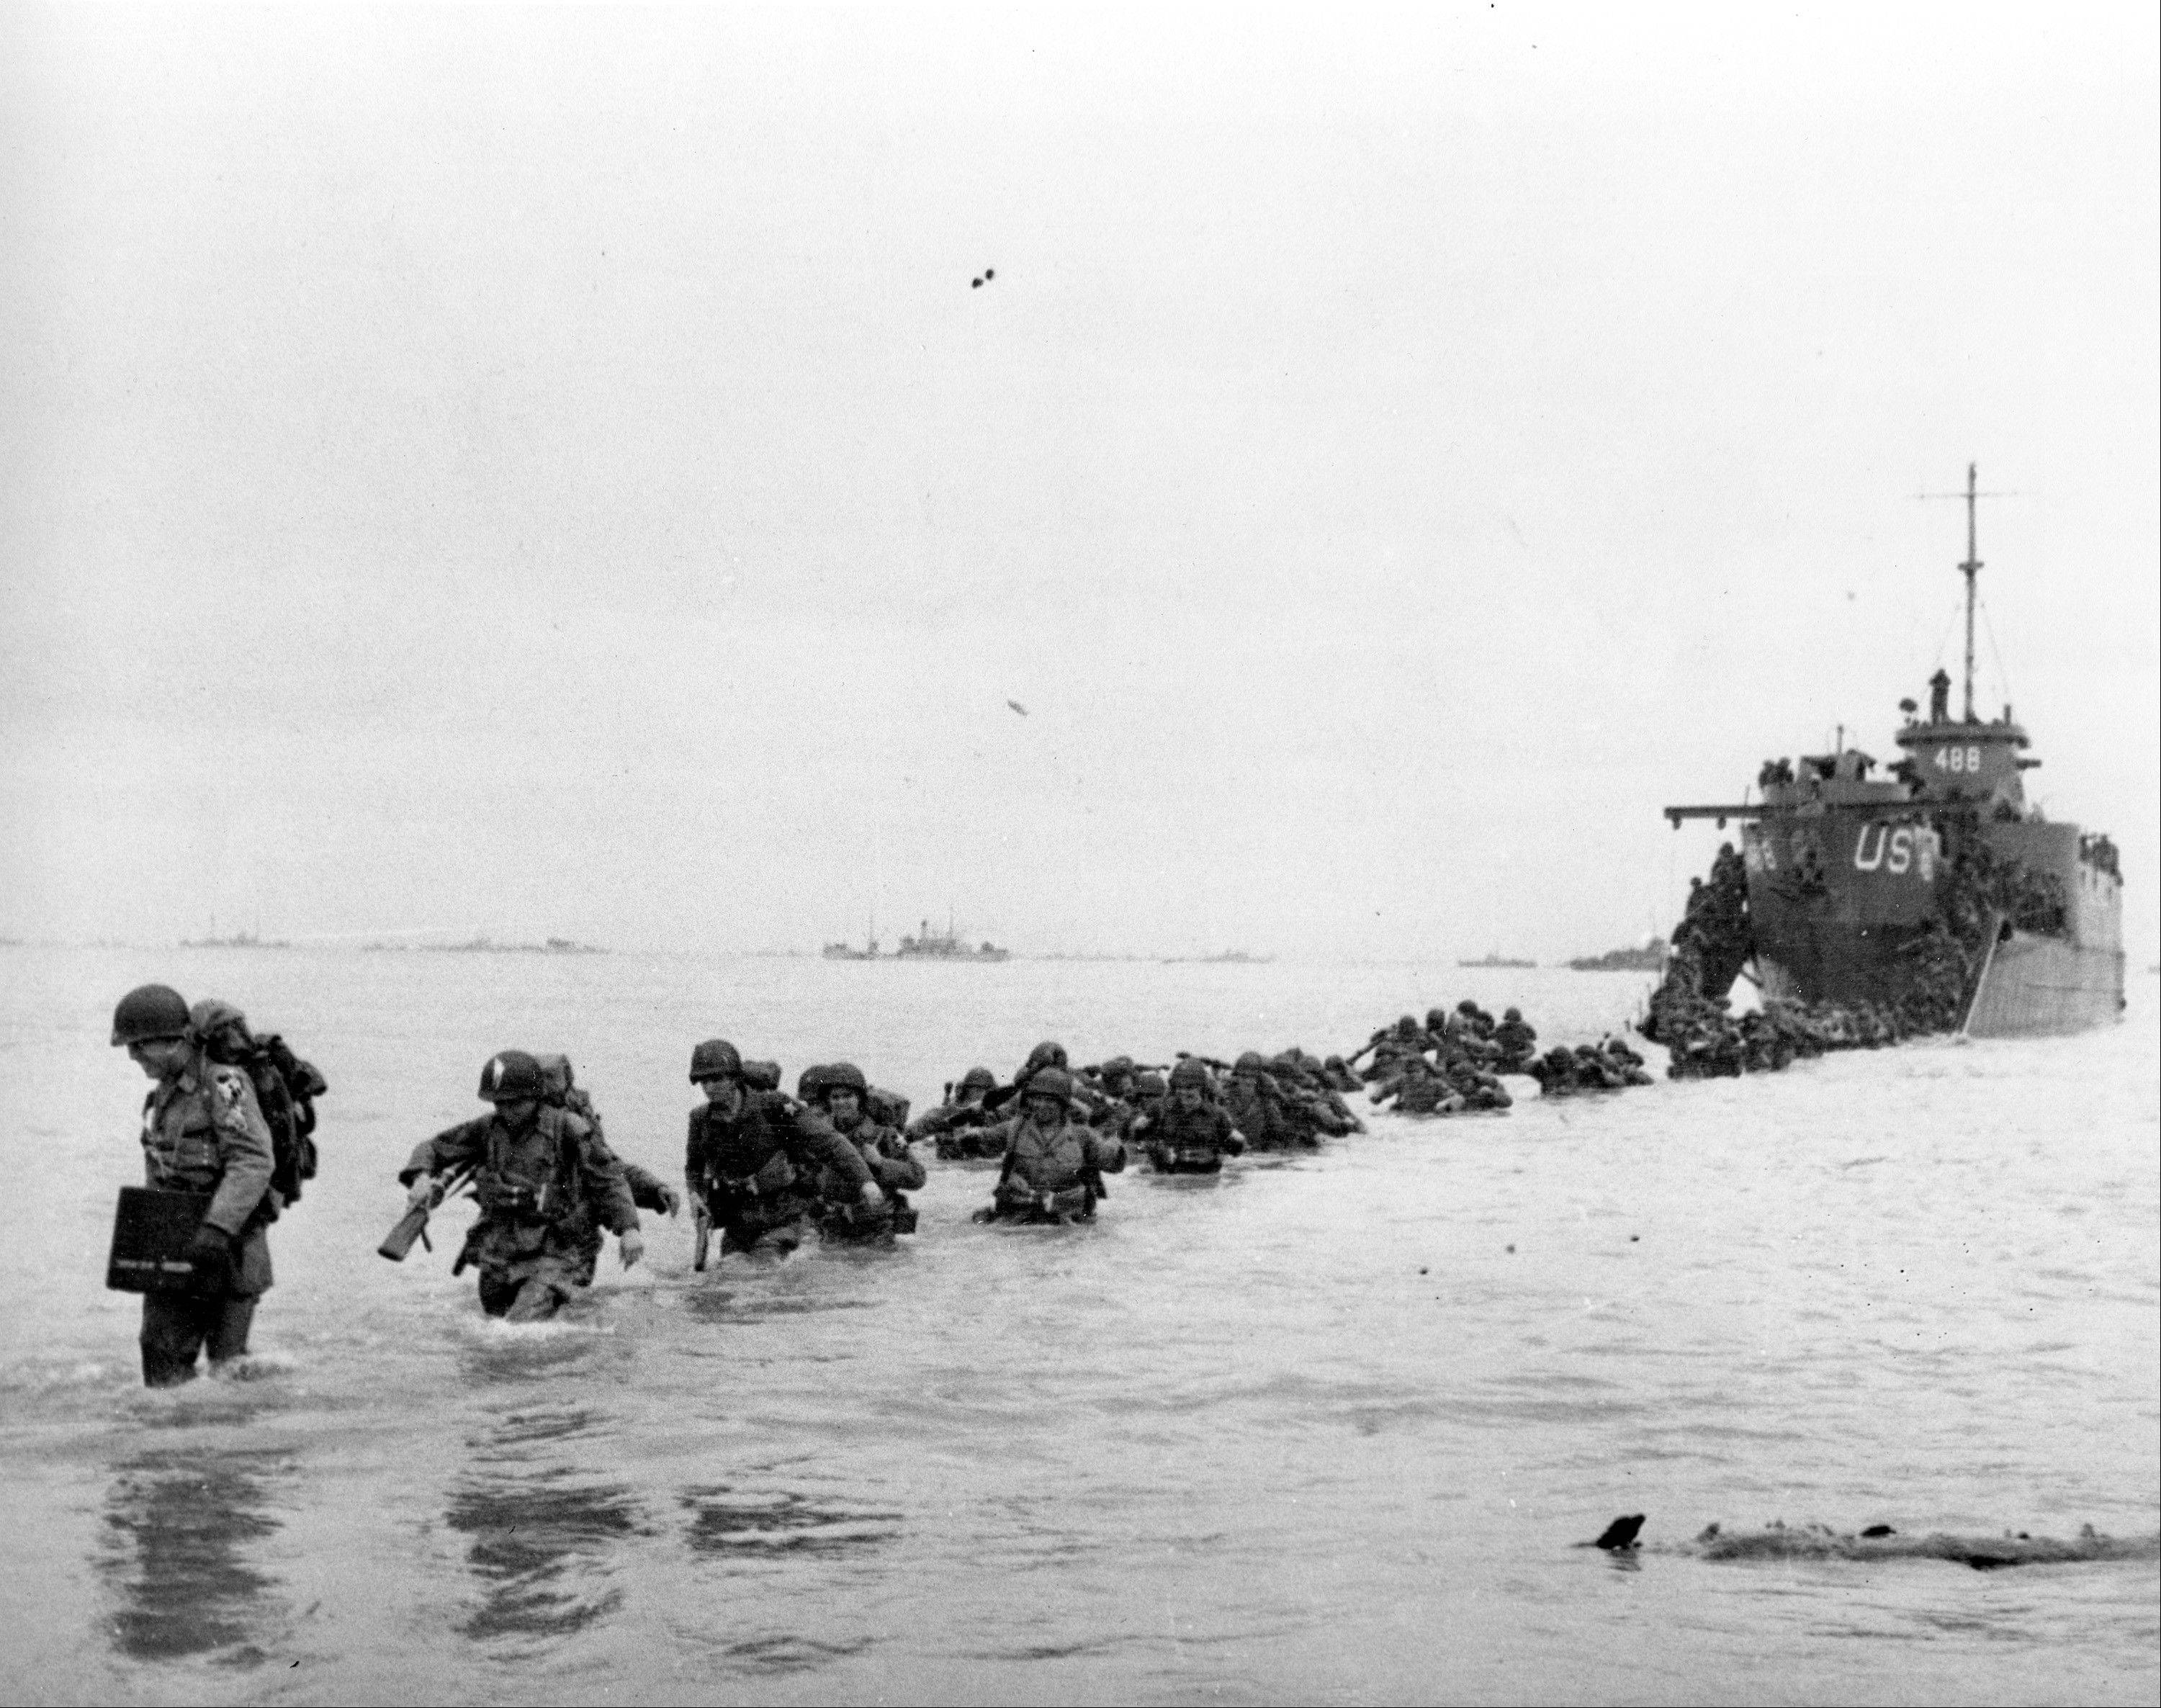 U.S. reinforcements wade through the surf from a landing craft in the days following D-Day and the Allied invasion of Nazi-occupied France at Normandy in June 1944 during World War II.